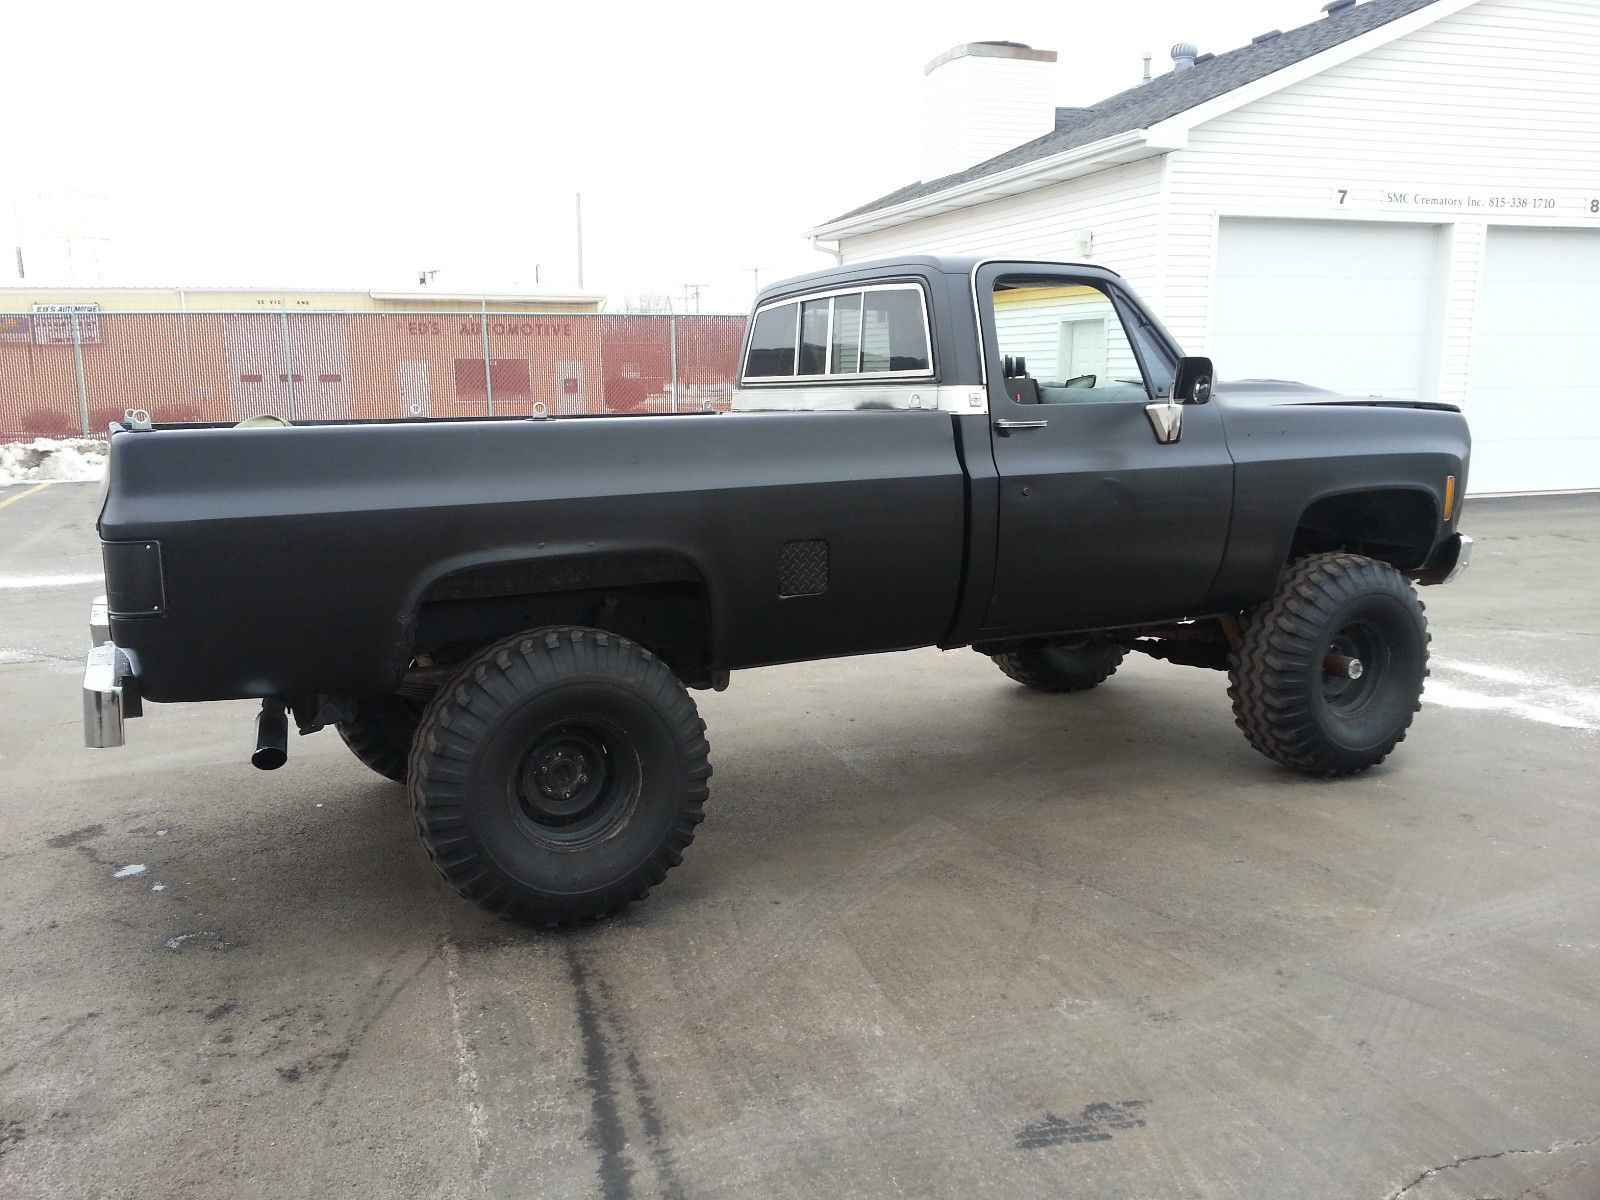 Illinois Car Title Transfer >> 1977 Chevrolet K10 Lifted, 4x4, 350ci, - Classic Chevrolet ...